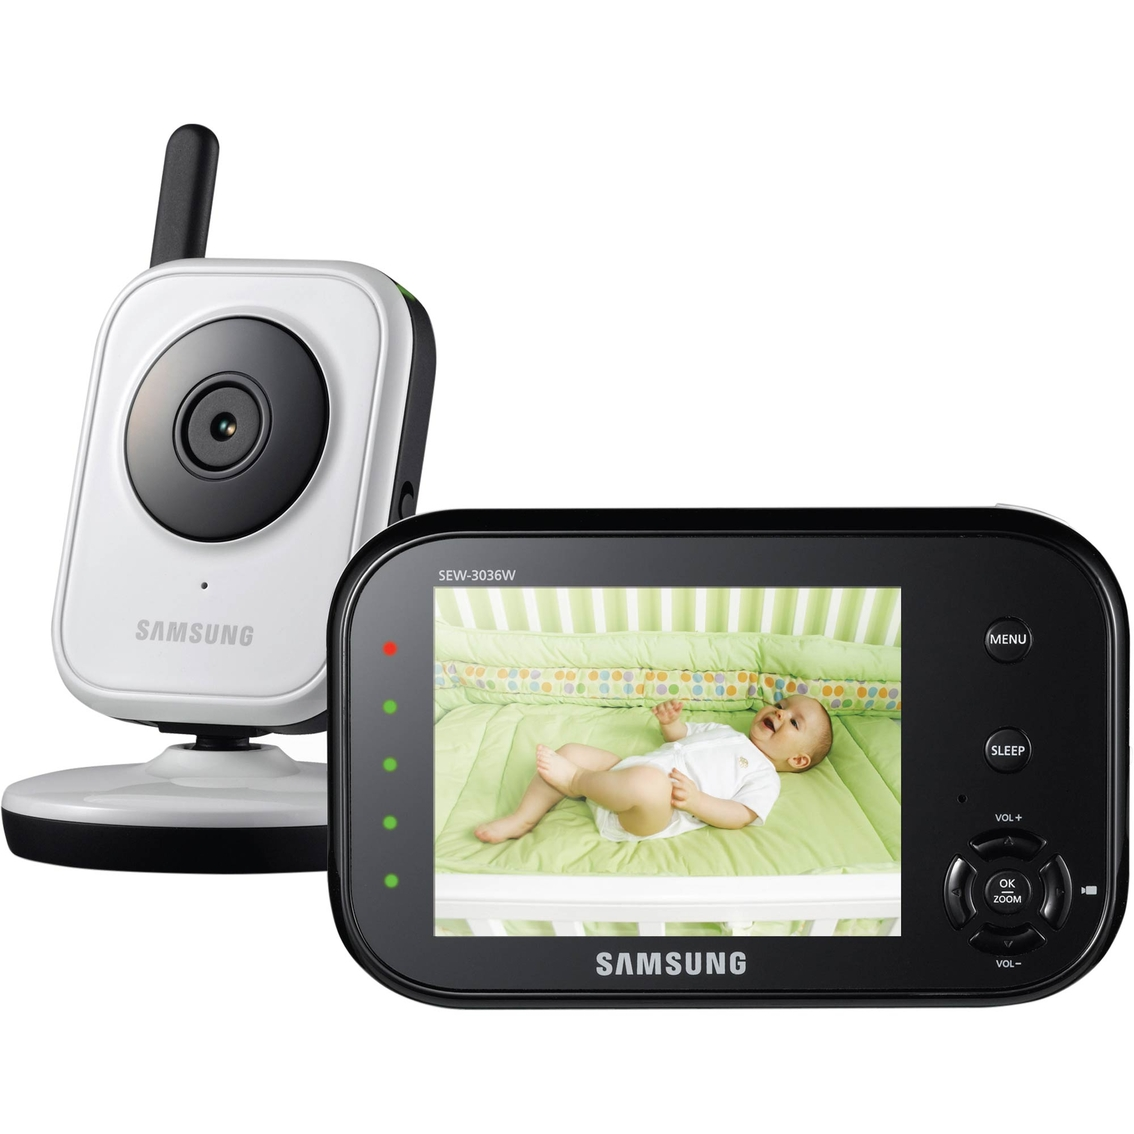 samsung babyview 3 5 in video monitor monitors baby toys shop the exchange. Black Bedroom Furniture Sets. Home Design Ideas